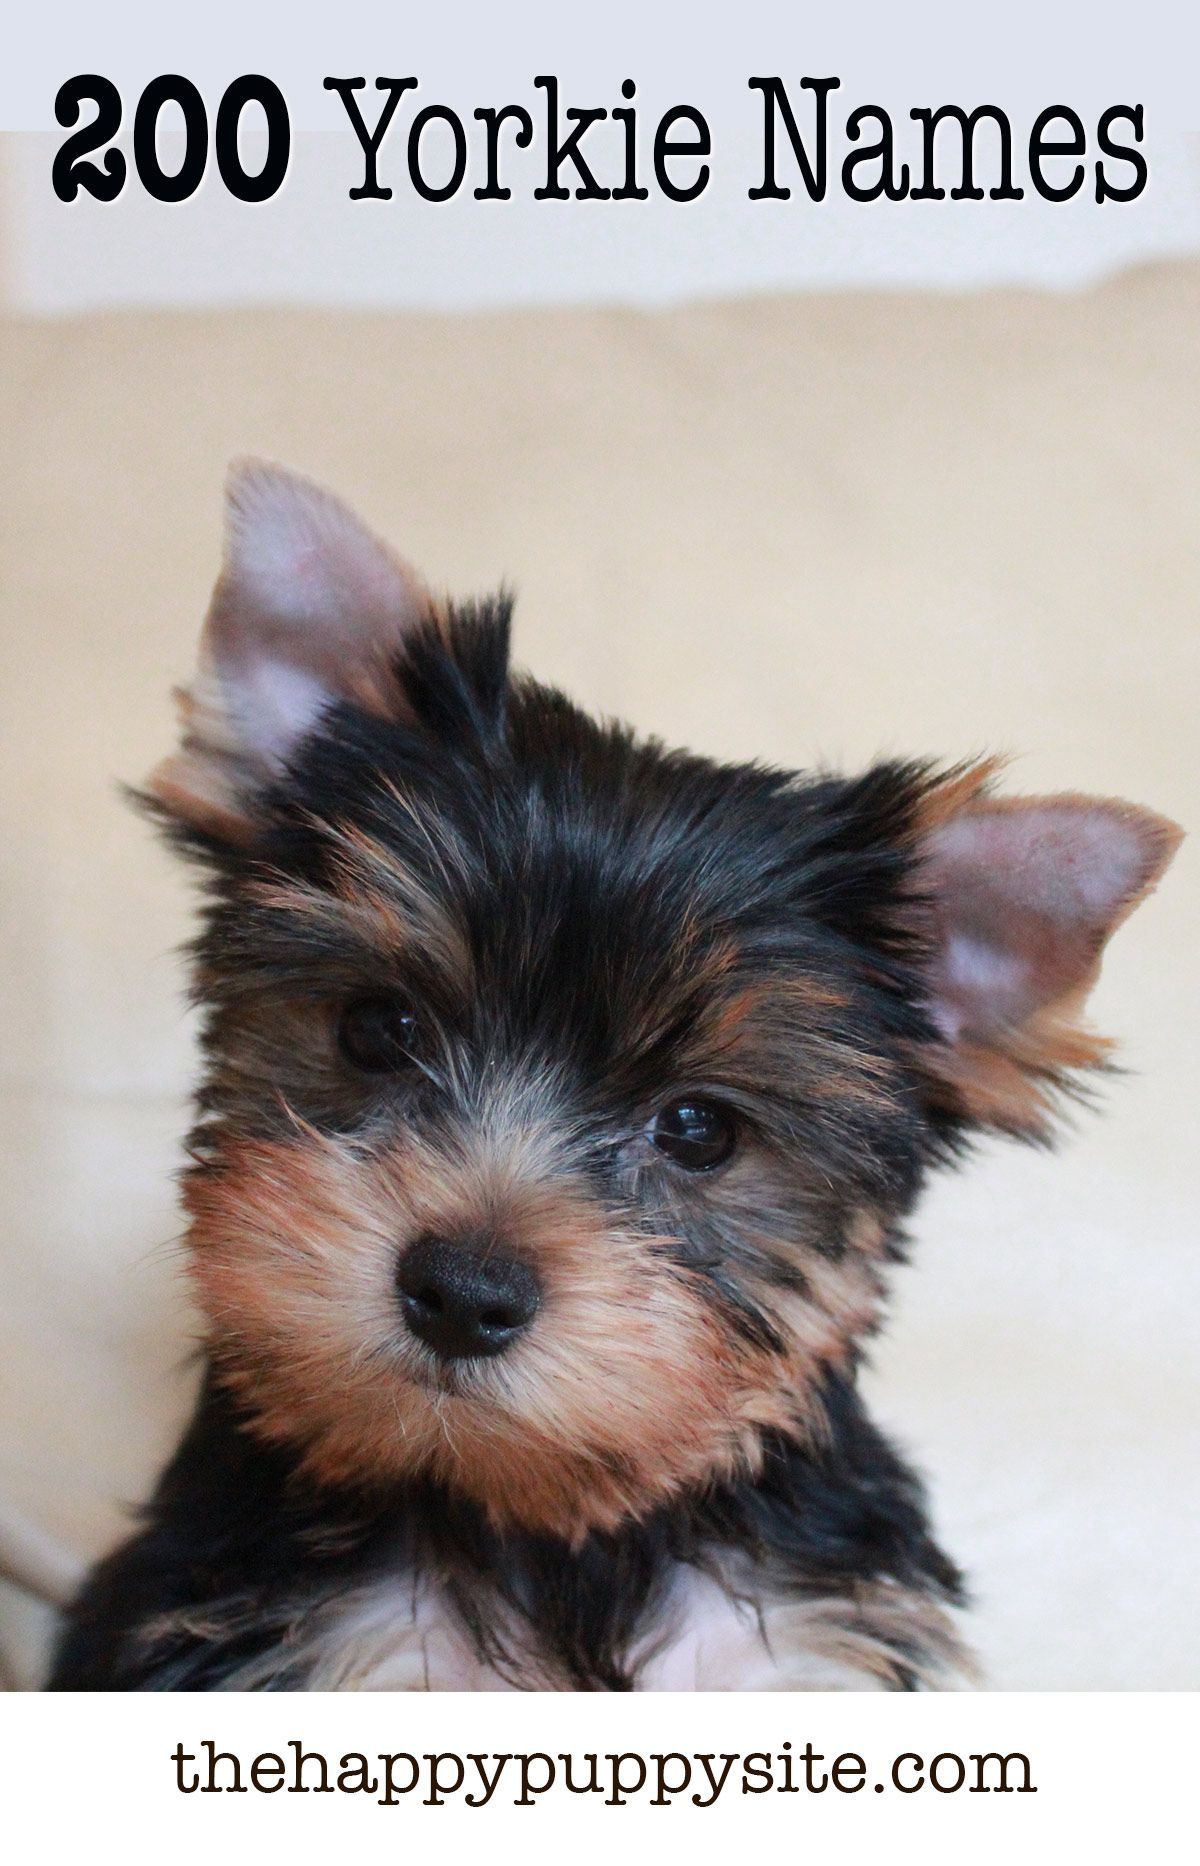 small yorkie puppy yorkie names 200 amazing ideas for naming yorkshire 3263